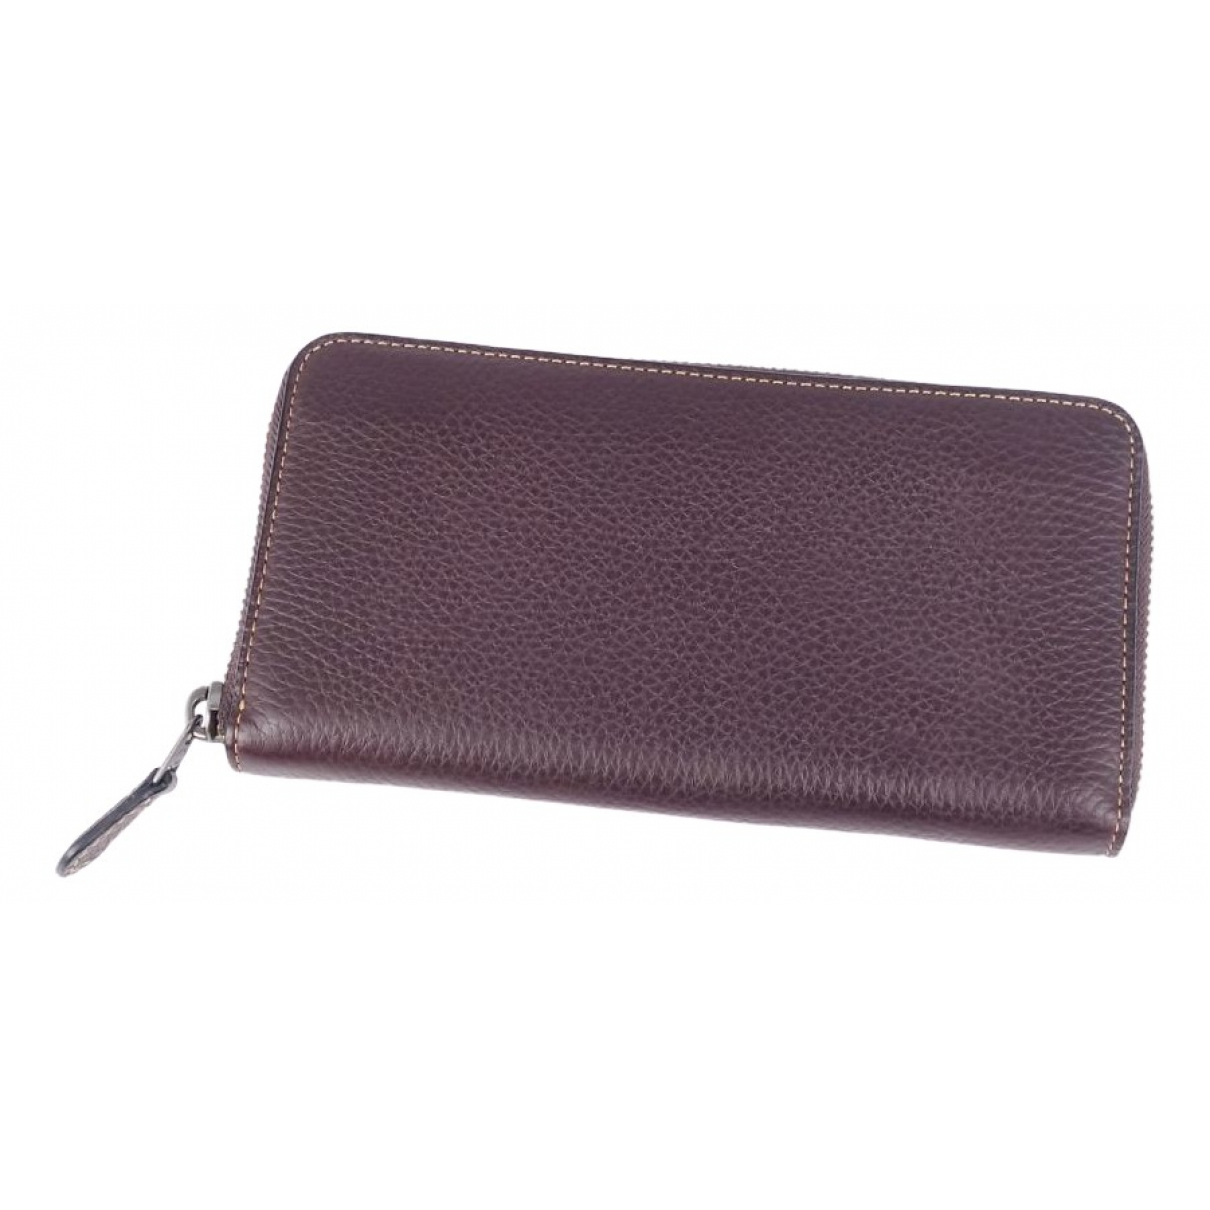 Coach \N Brown Leather wallet for Women \N